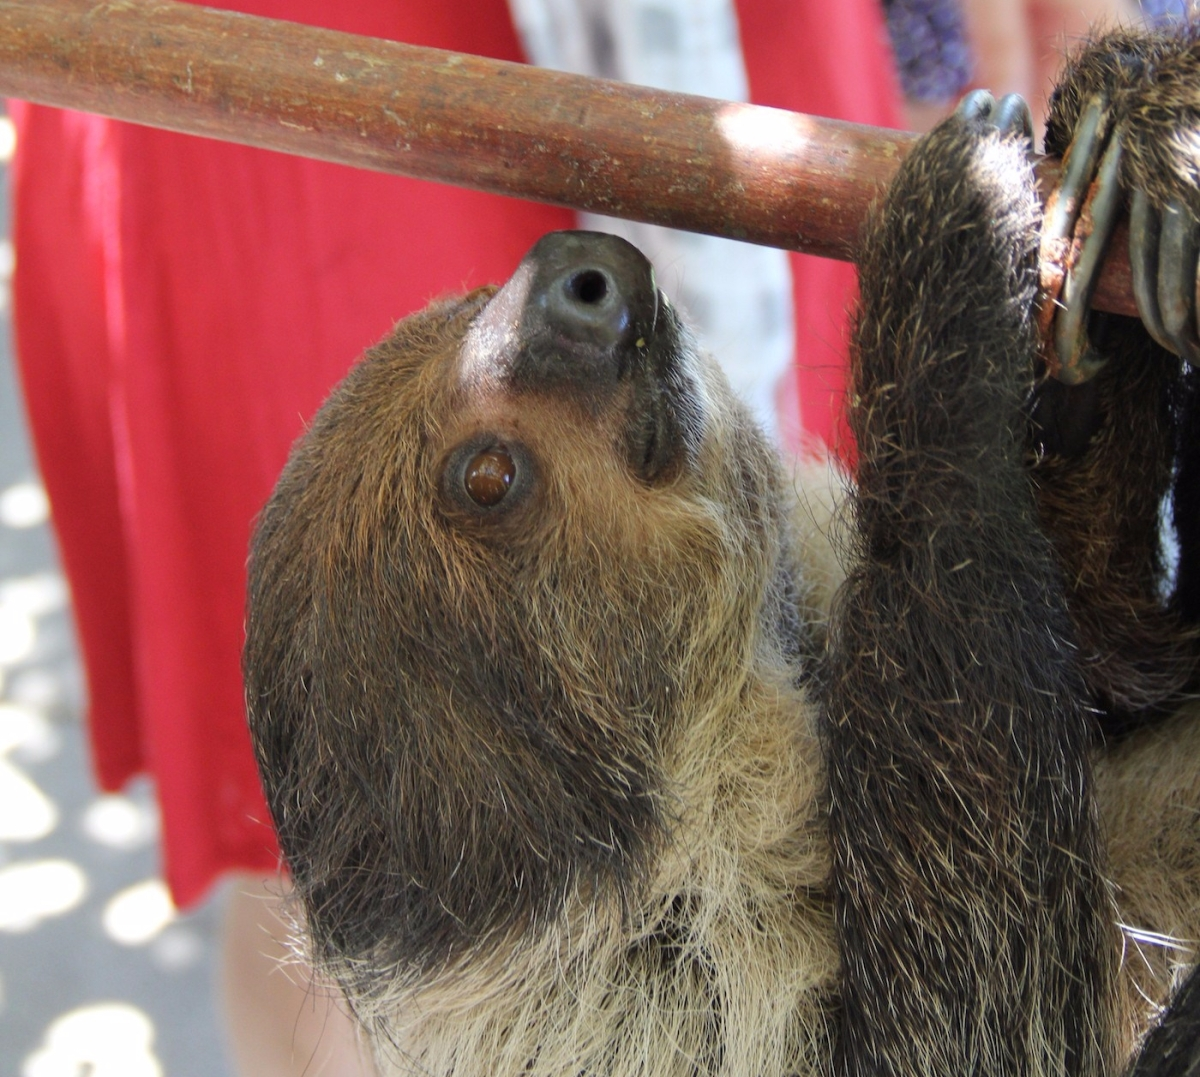 It's Surprisingly Easy To Get A Sloth To Come To Your House